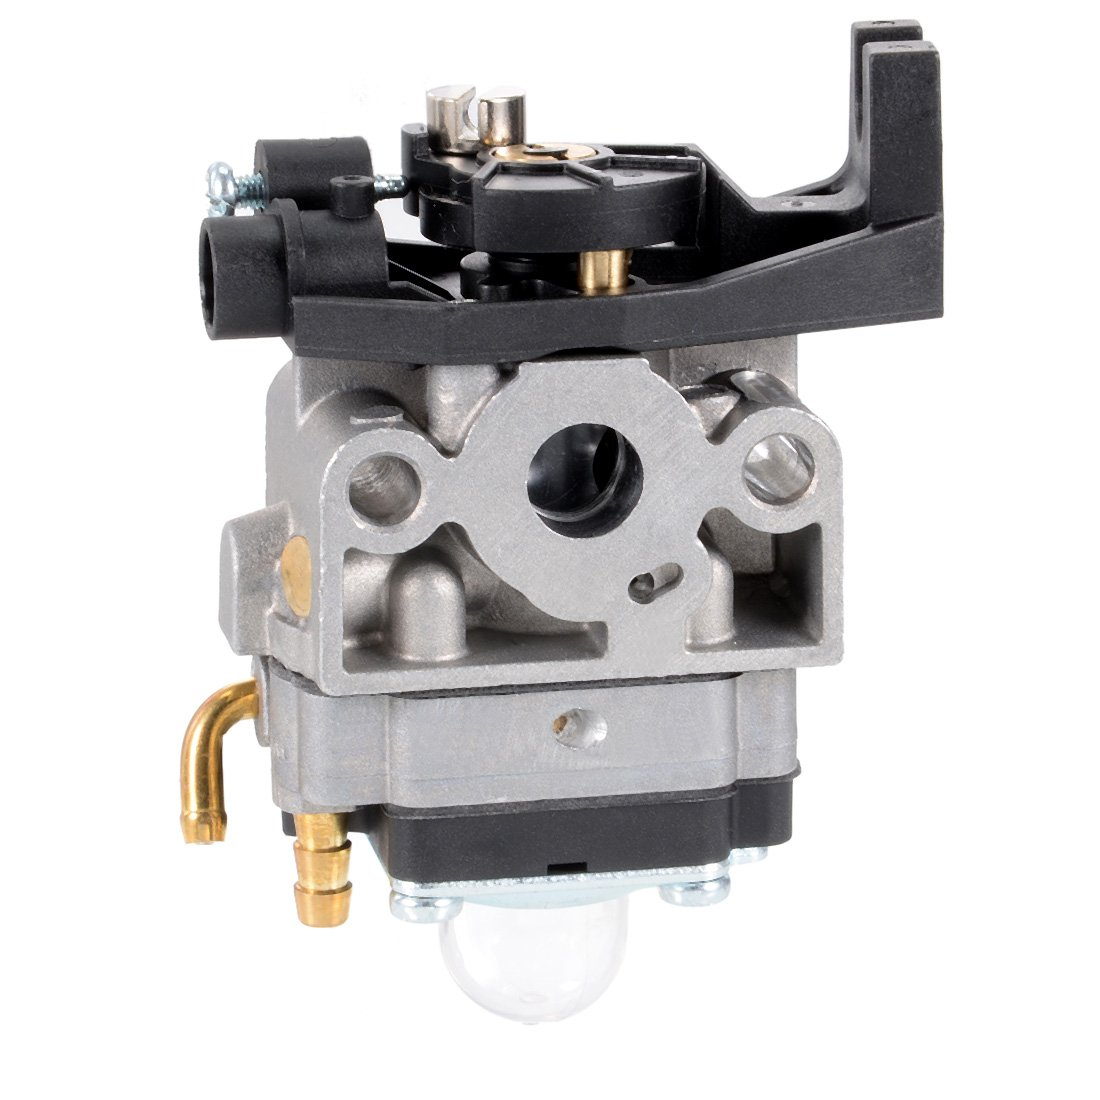 uxcell New Carburetor Carb for Honda GX25 GX25N GX25NT FG110 FG110K1 4 Cycle Engine Replaces 16100-Z0H-825